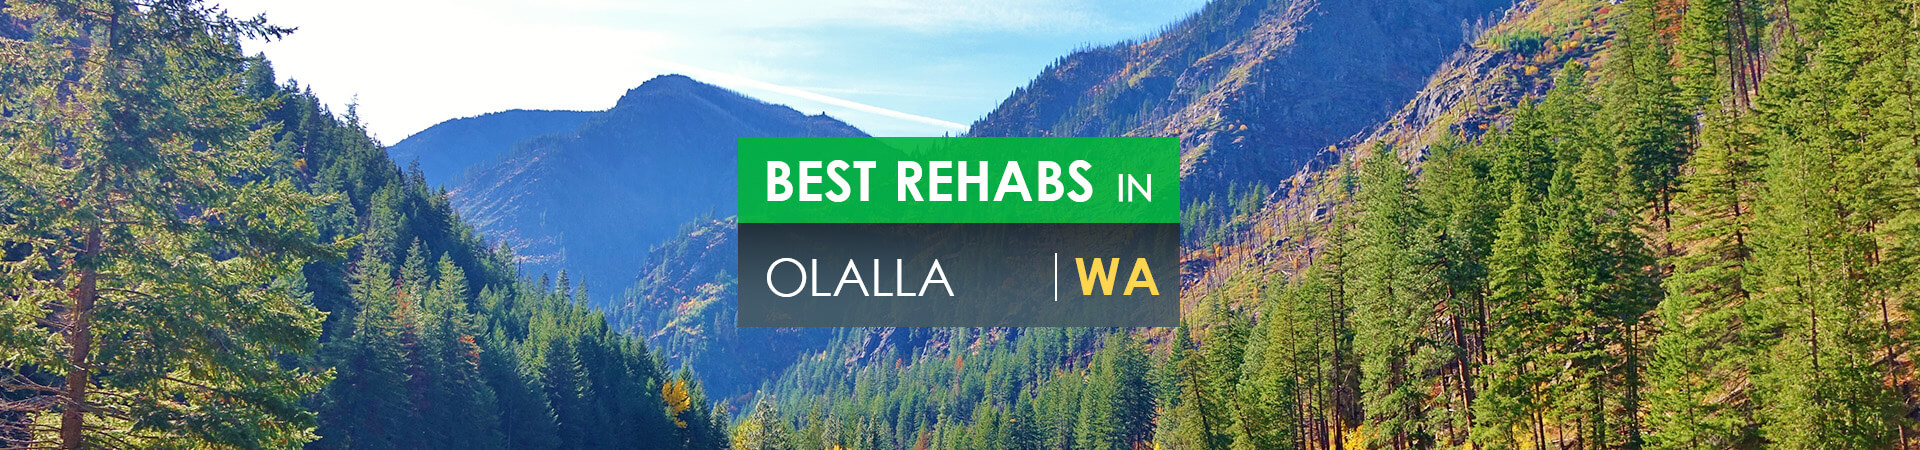 Best rehabs in Olalla, WA